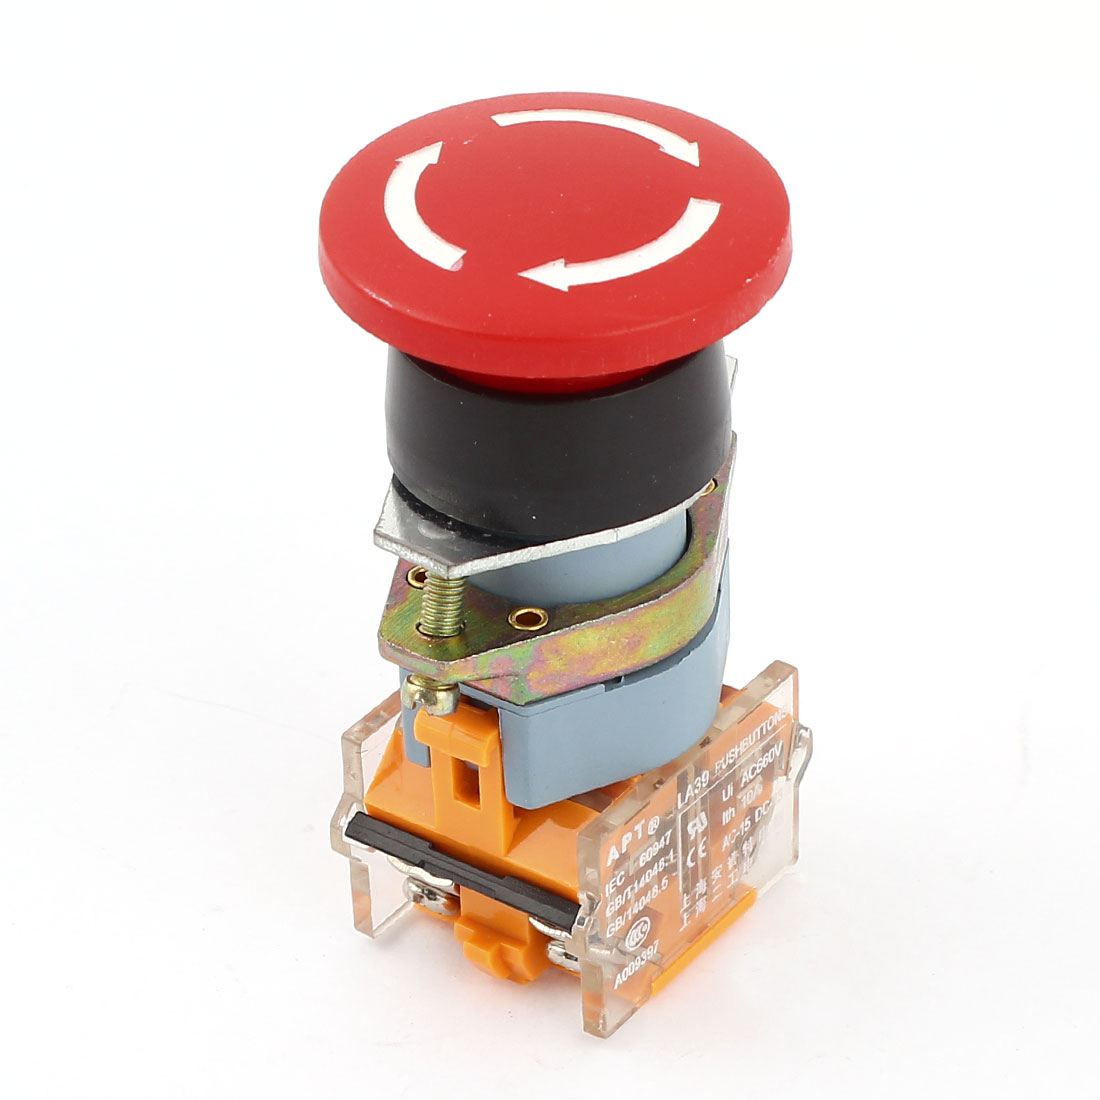 AC600V 10A 1NO 1NC Emergency Stop Latching Red Mushroom Push Button Switch